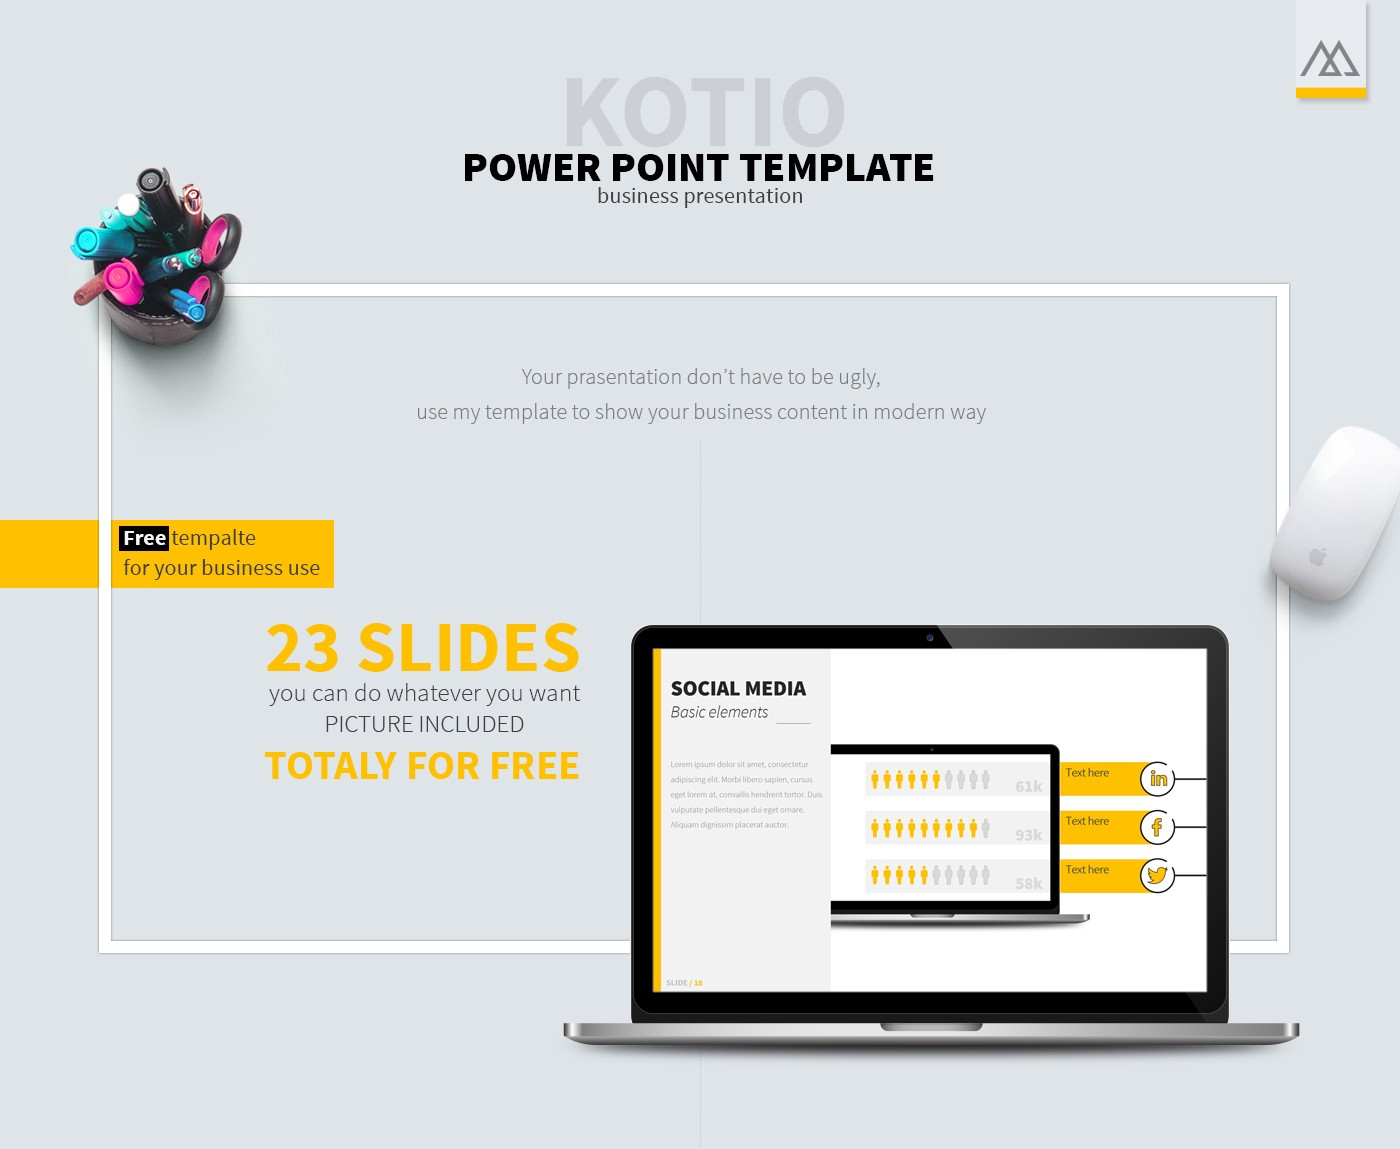 40 free cool powerpoint templates for presentations download friedricerecipe Gallery